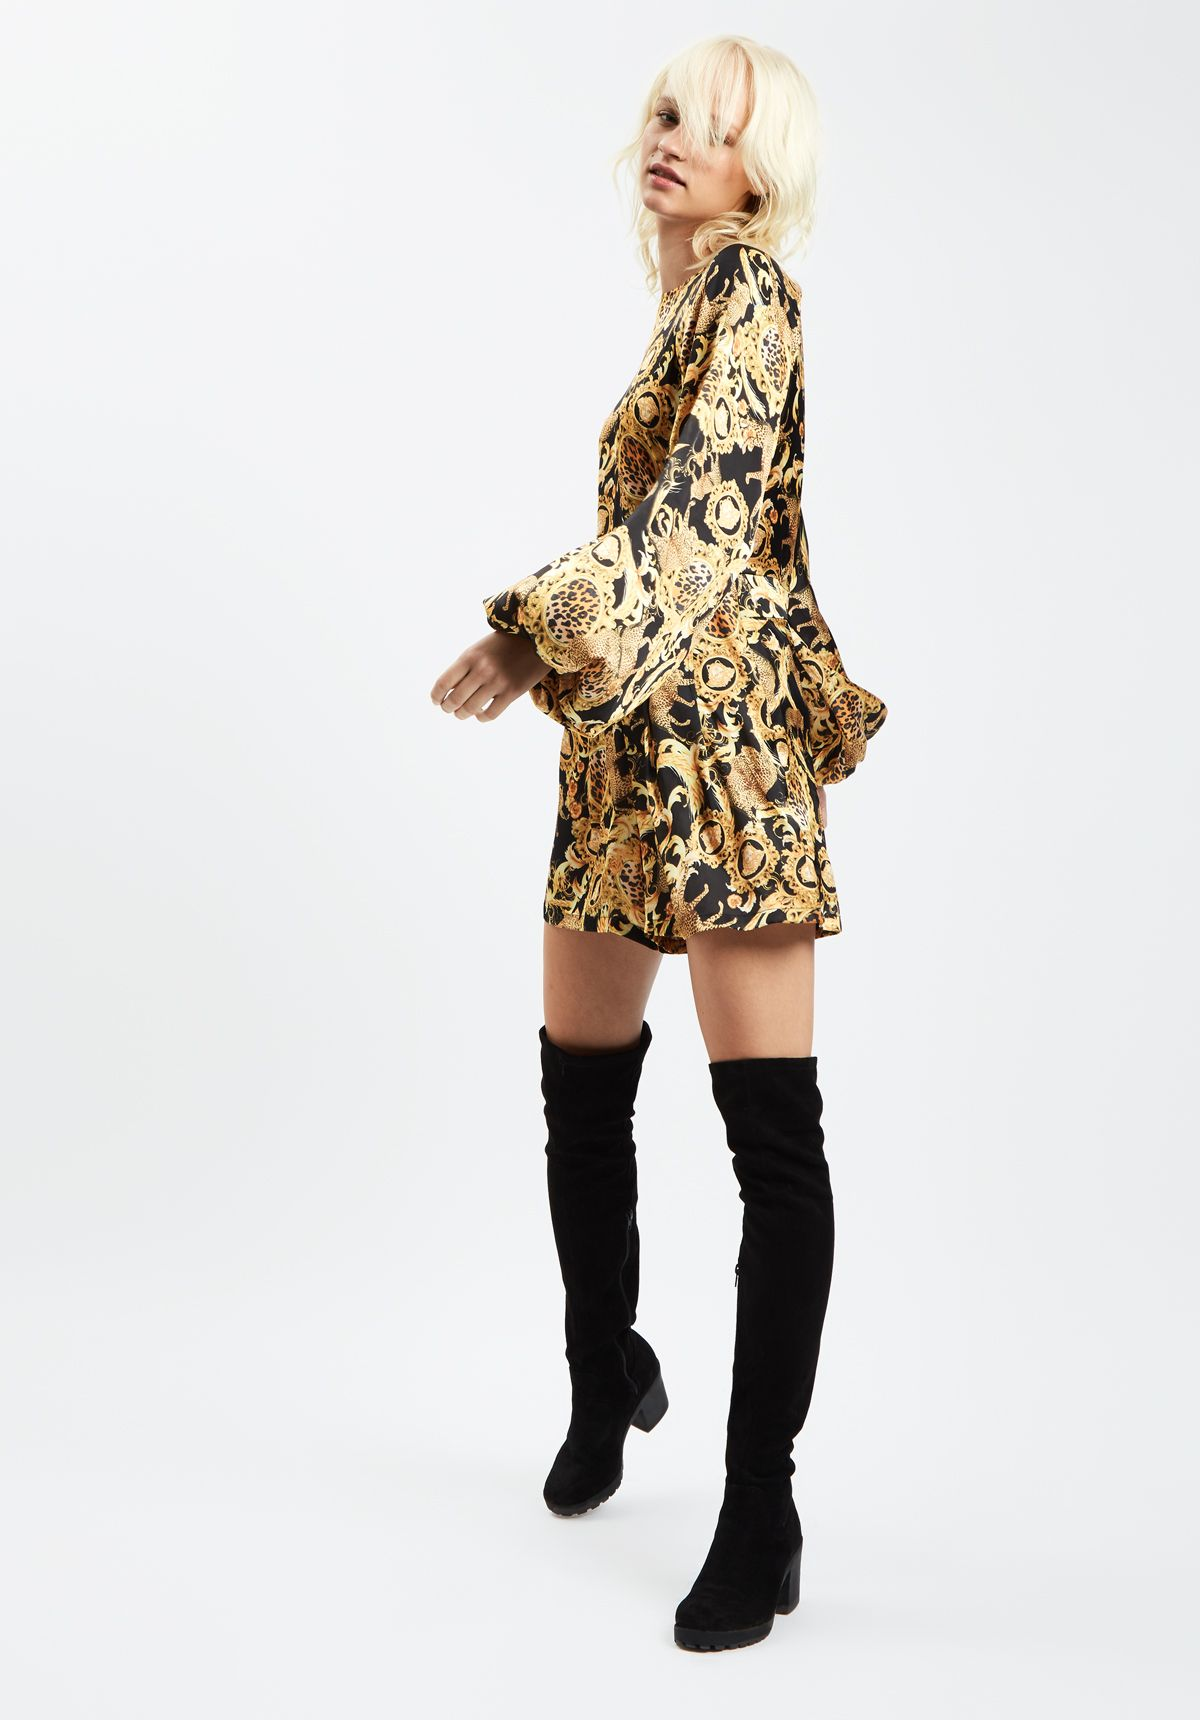 Bambi Printed Long Sleeve Playsuit in Black and Gold